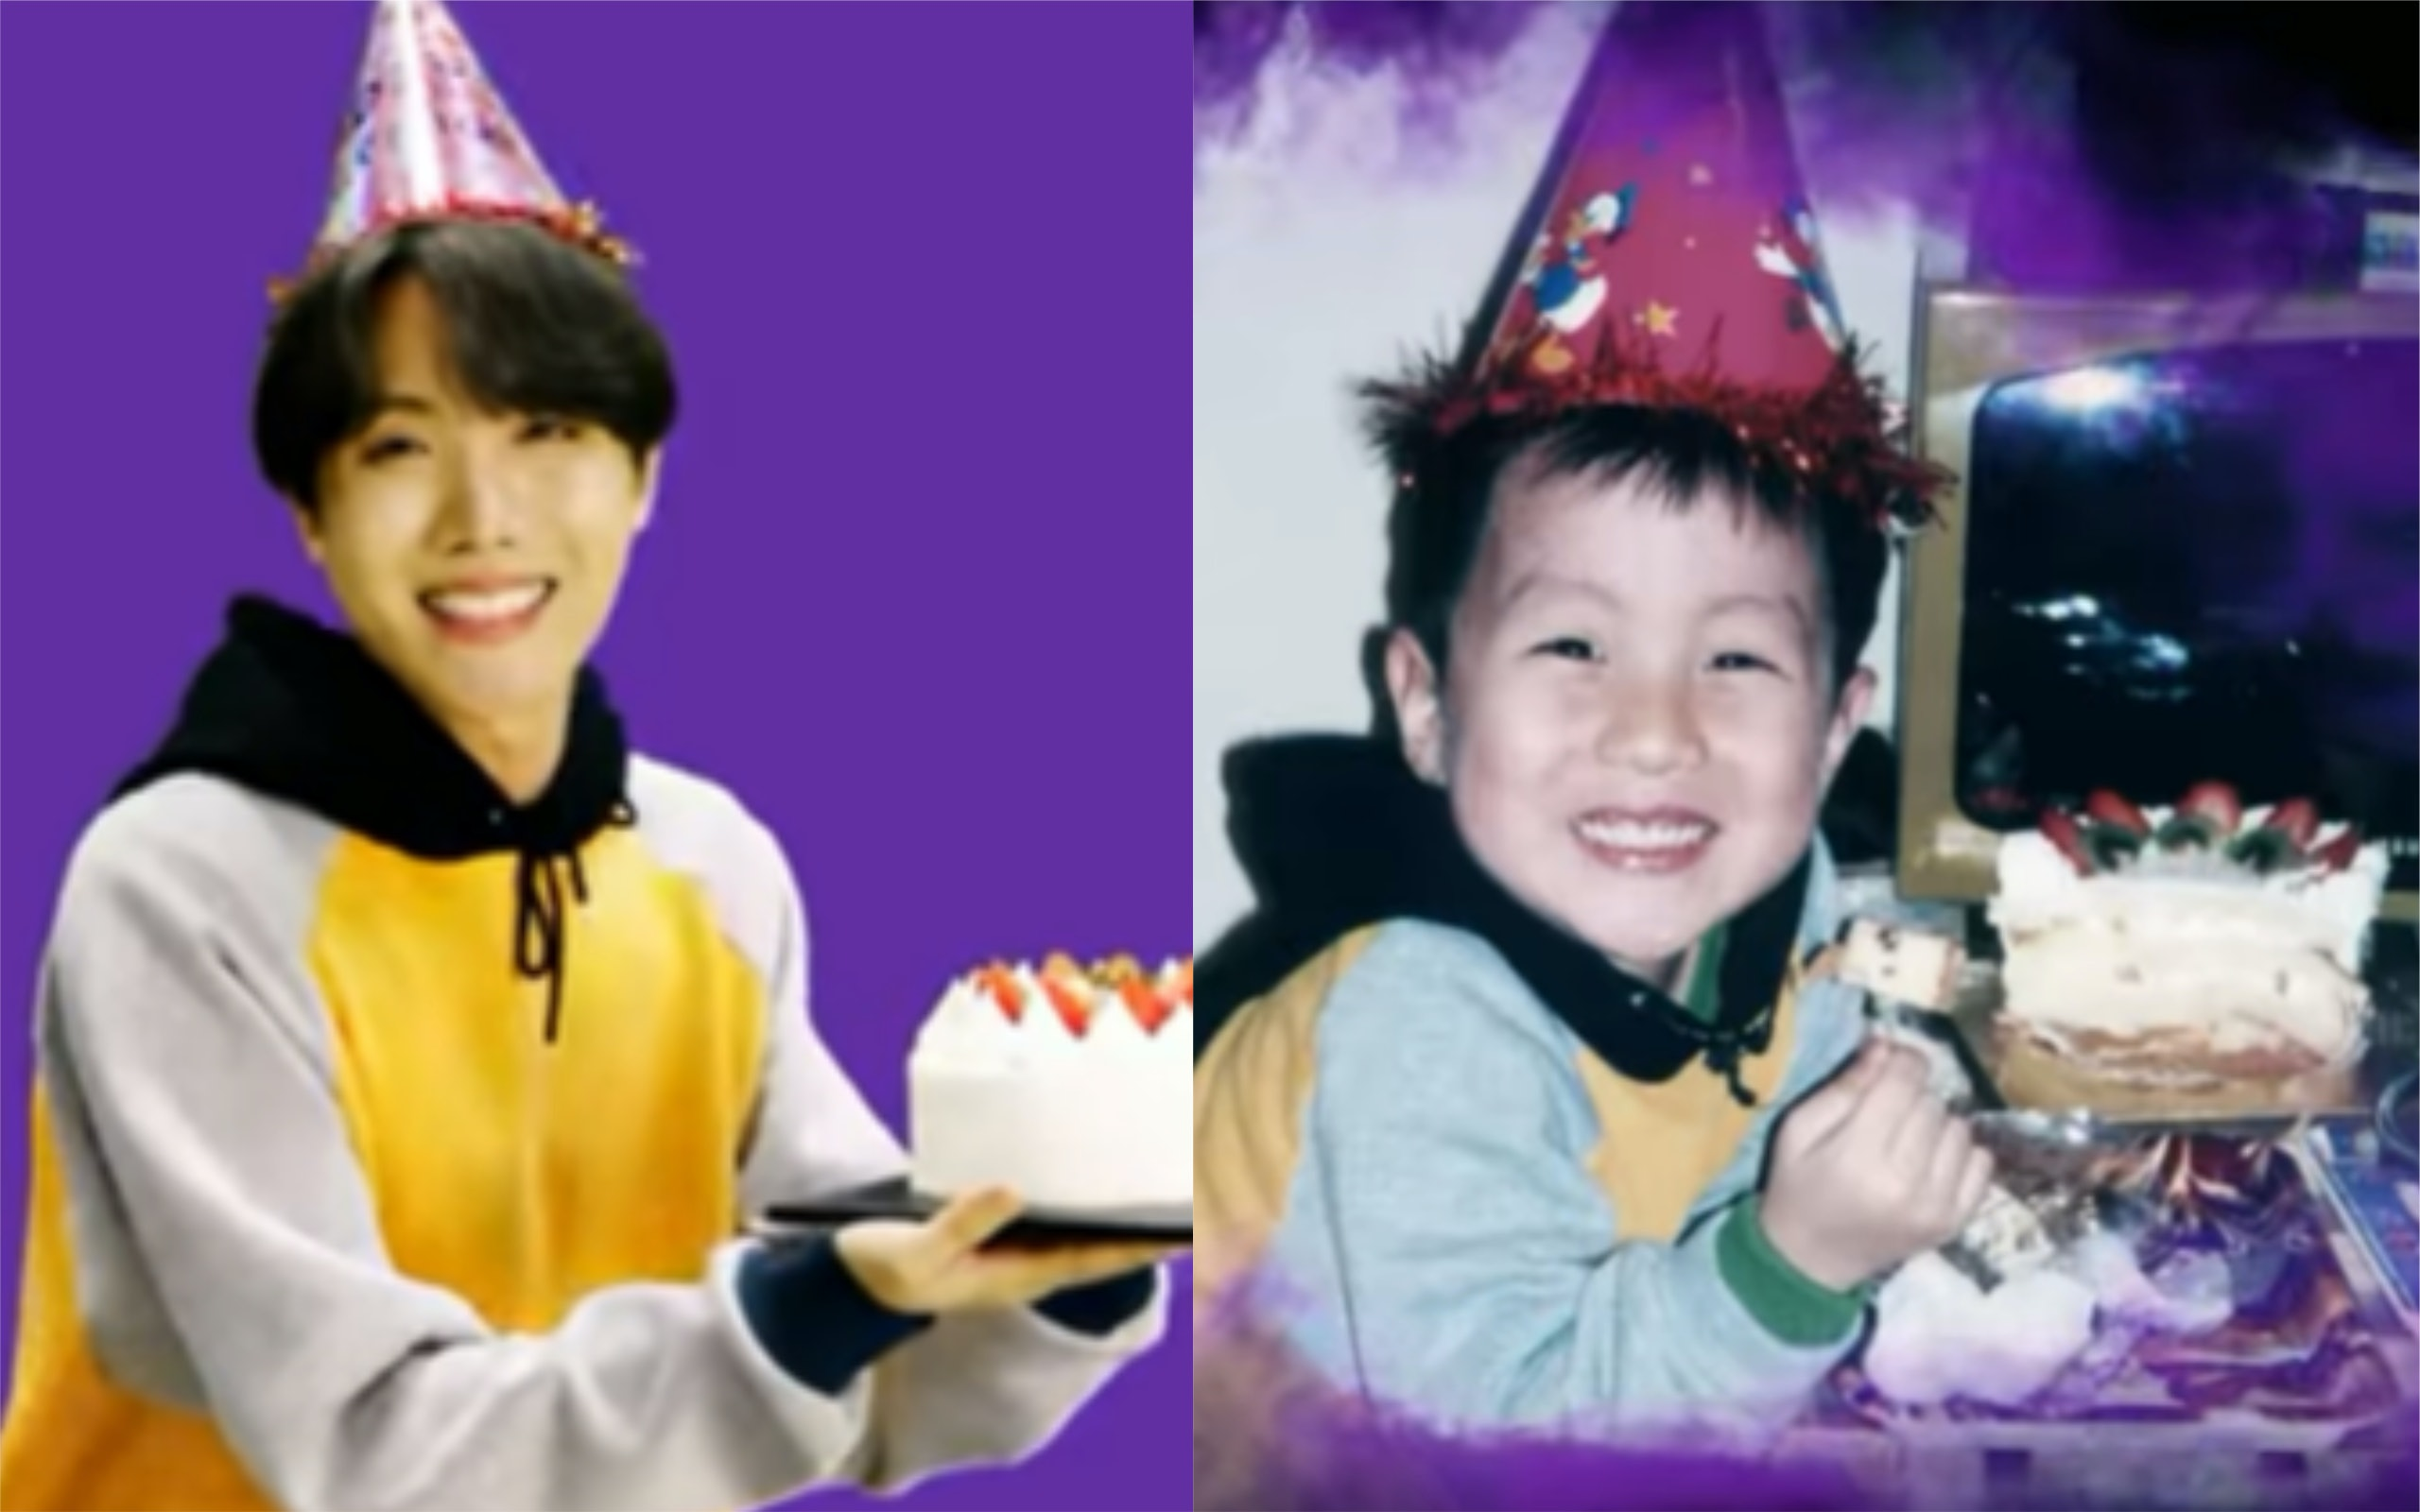 This Video Of Bts J Hope Recreating His Childhood Birthday Photo Is Everything